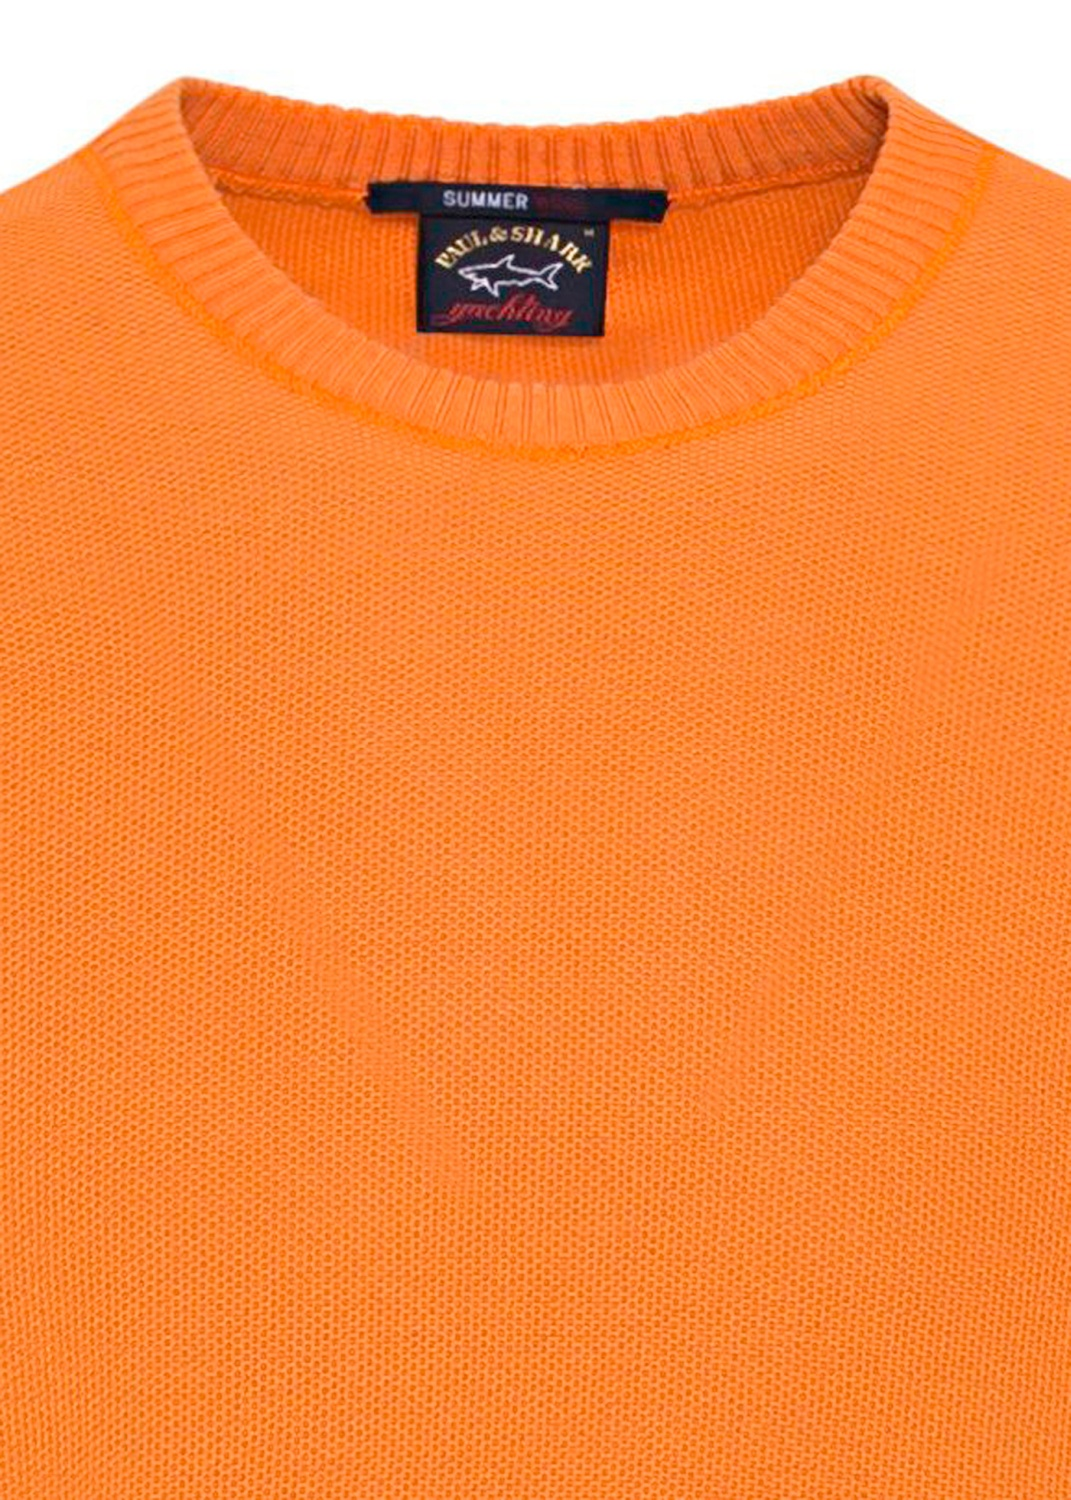 MEN'S KNITTED ROUNDNECK C.W. WOOL image number 2